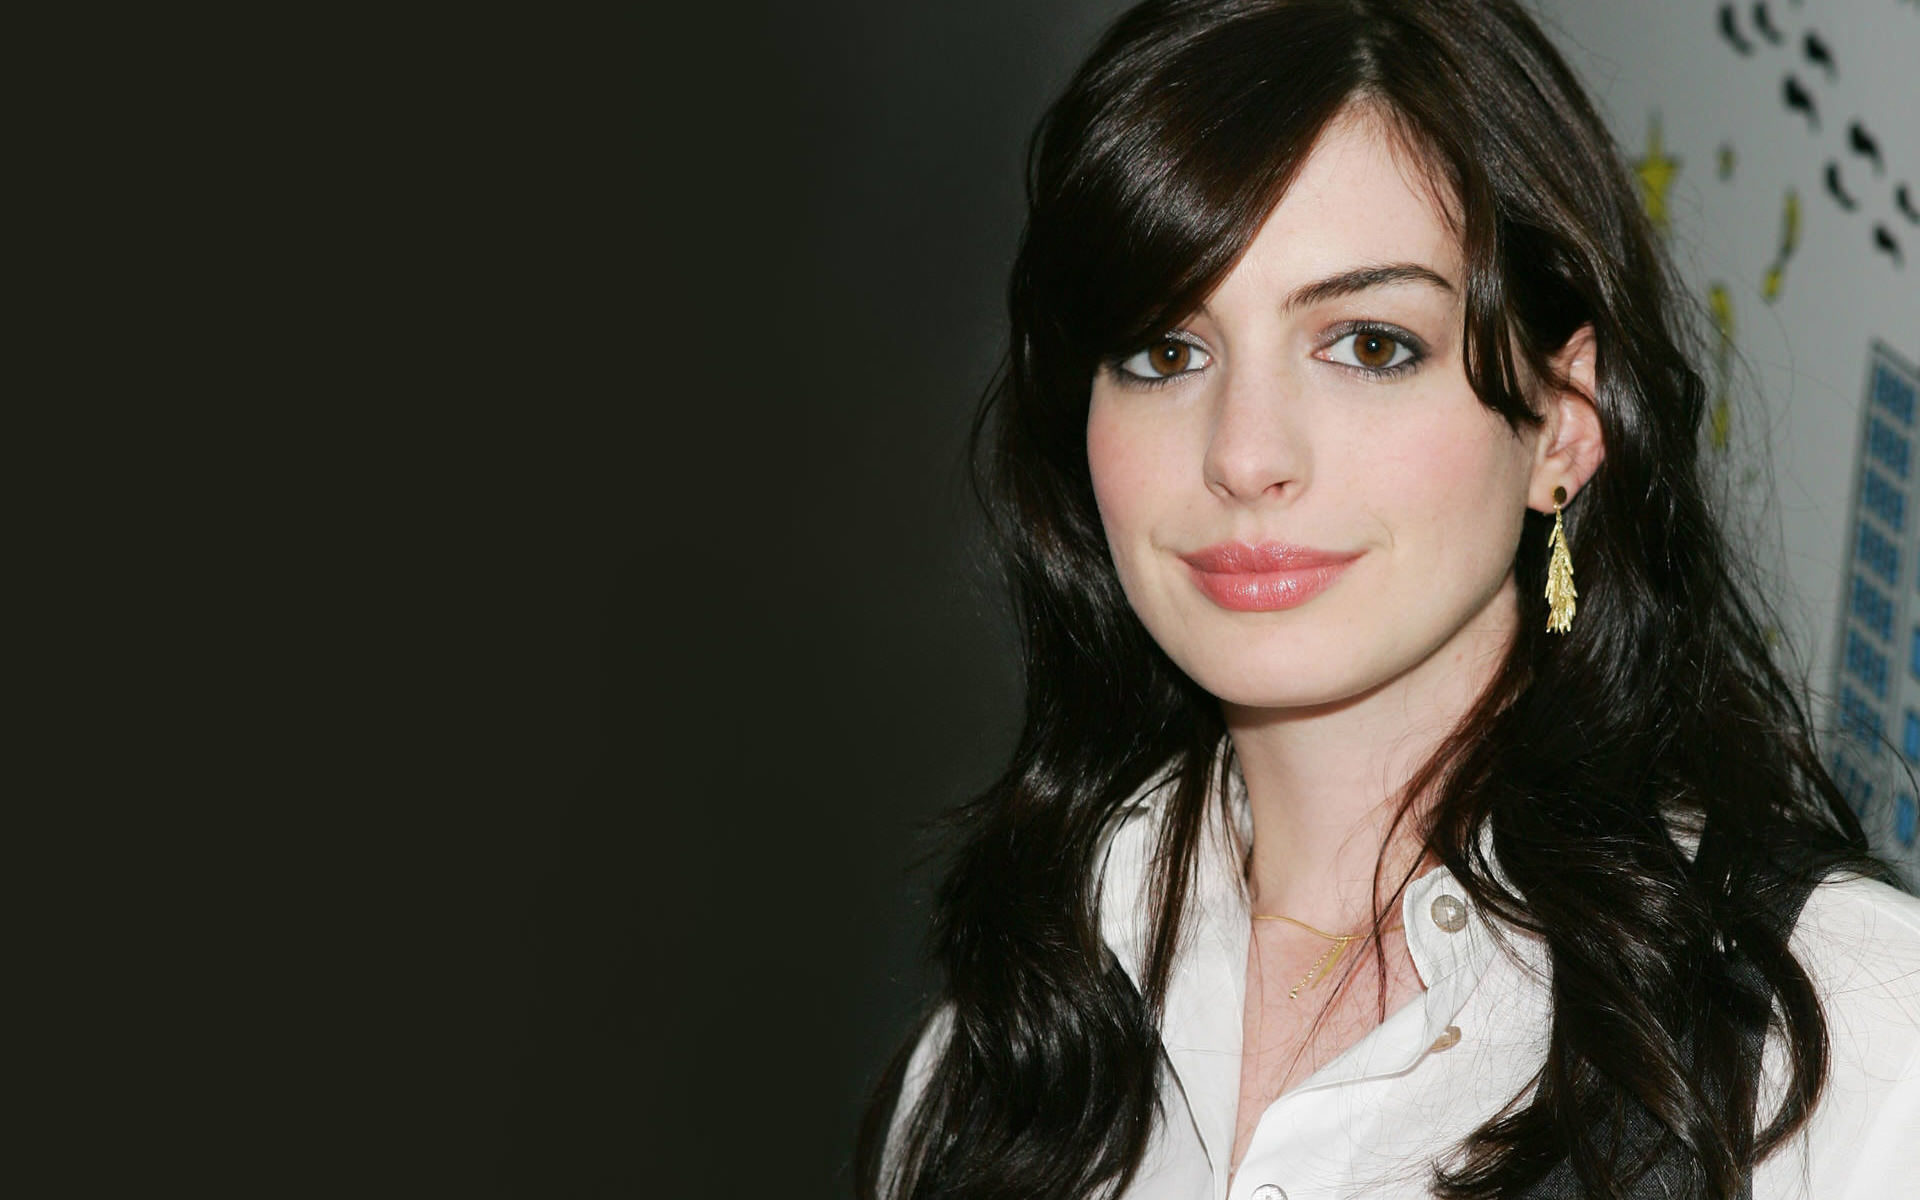 wallpaperstop.com/wallpapers/celebrity-wallpapers...pers/anne-hathaway ...: wallconvert.com/converted/anne-hathaway-sexy-image-1920x1200-0032...